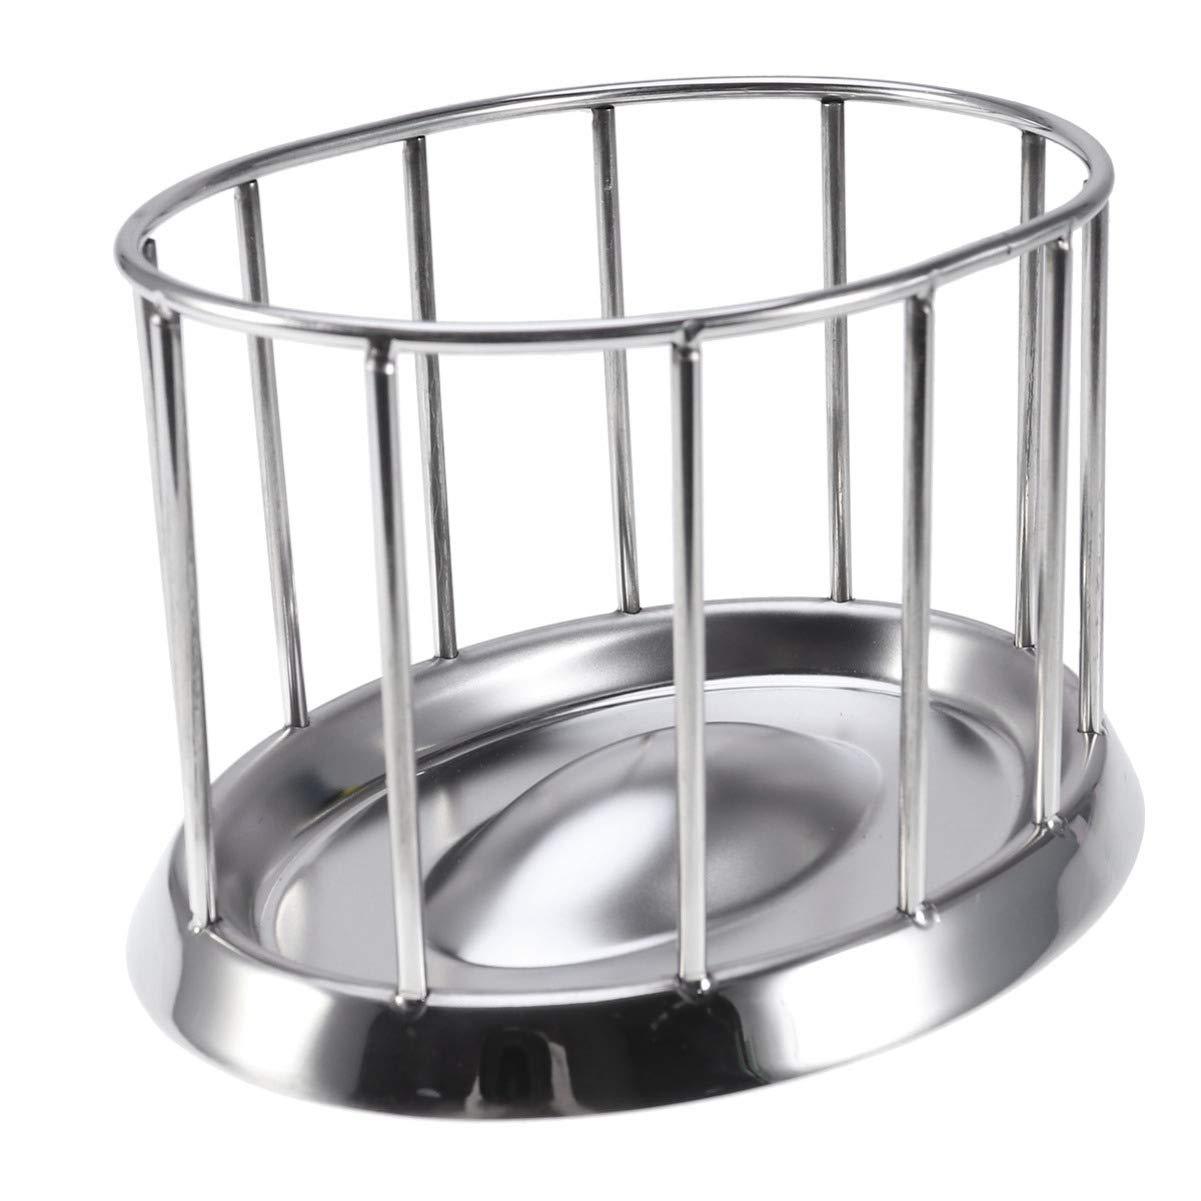 Balacoo Tortoise Water and Foot Bowl Stainless Steel Pet Feeding Tray Tool by Balacoo